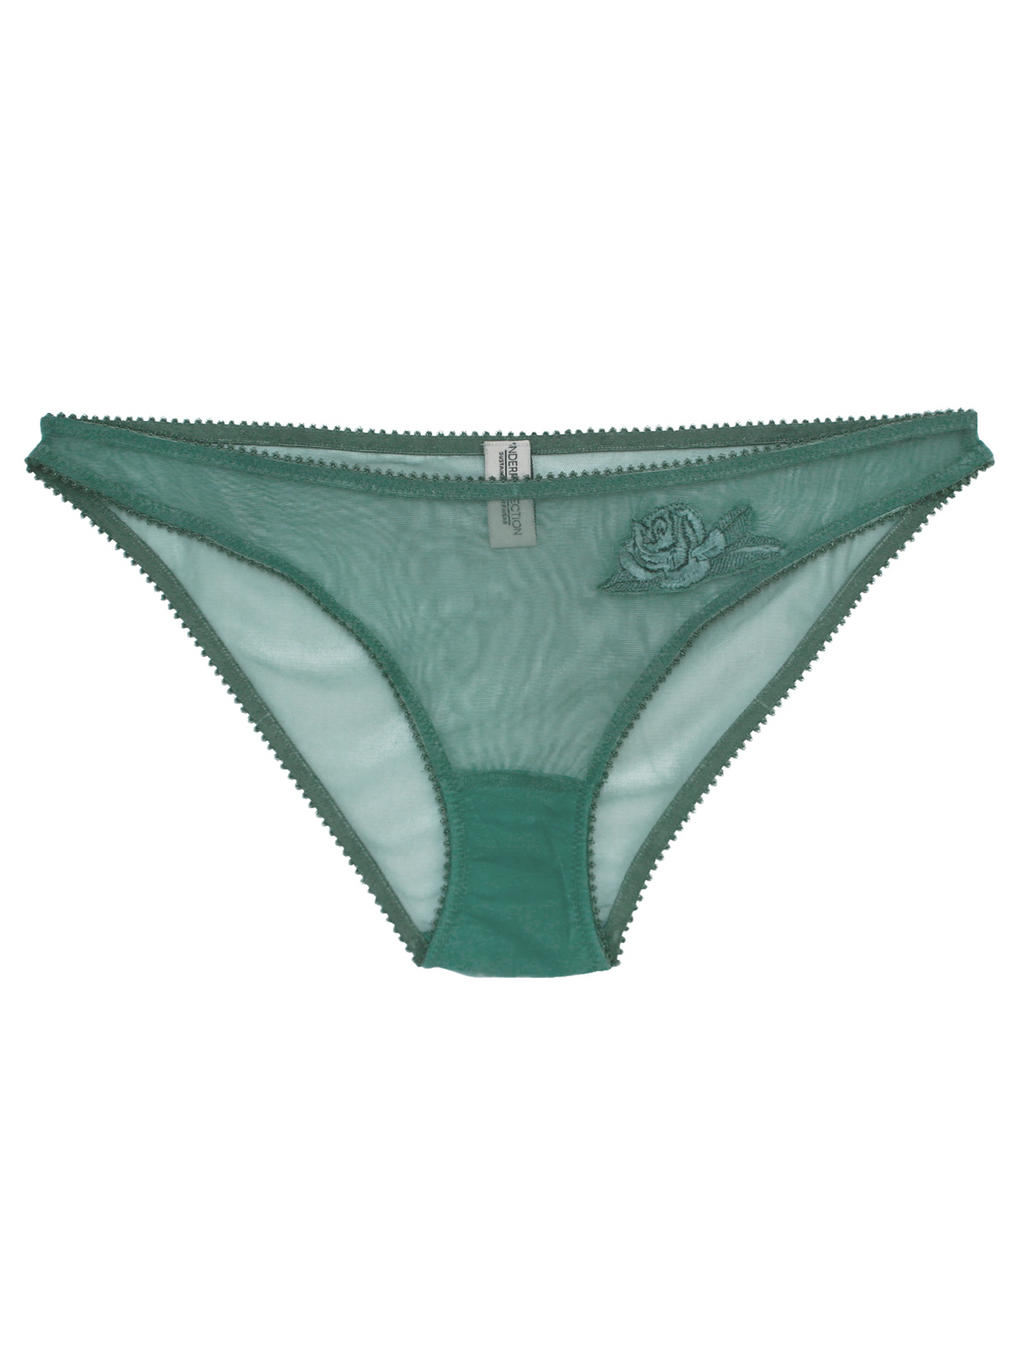 Heather Briefs and Bralette by Underprotection | Sustainable underwear Finding Rosie